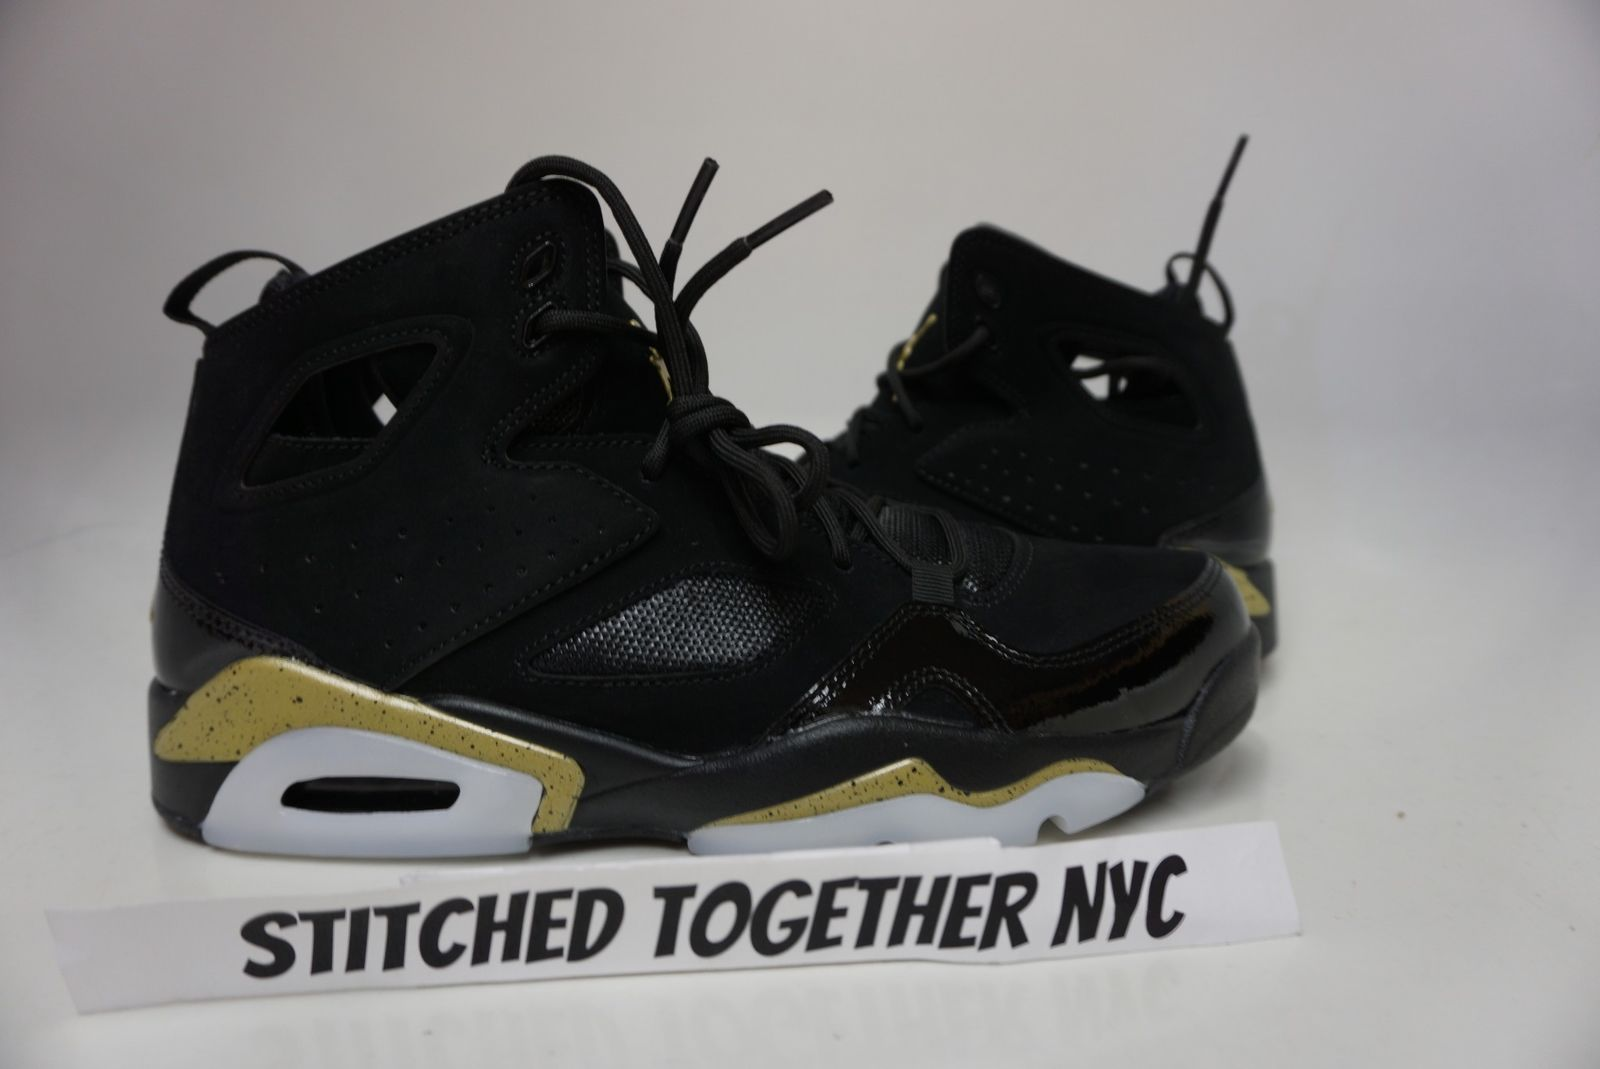 555475-031) MENS AIR JORDAN FLIGHT CLUB 91 BLACK METALLIC GOLD WHITE ... faa4c633e